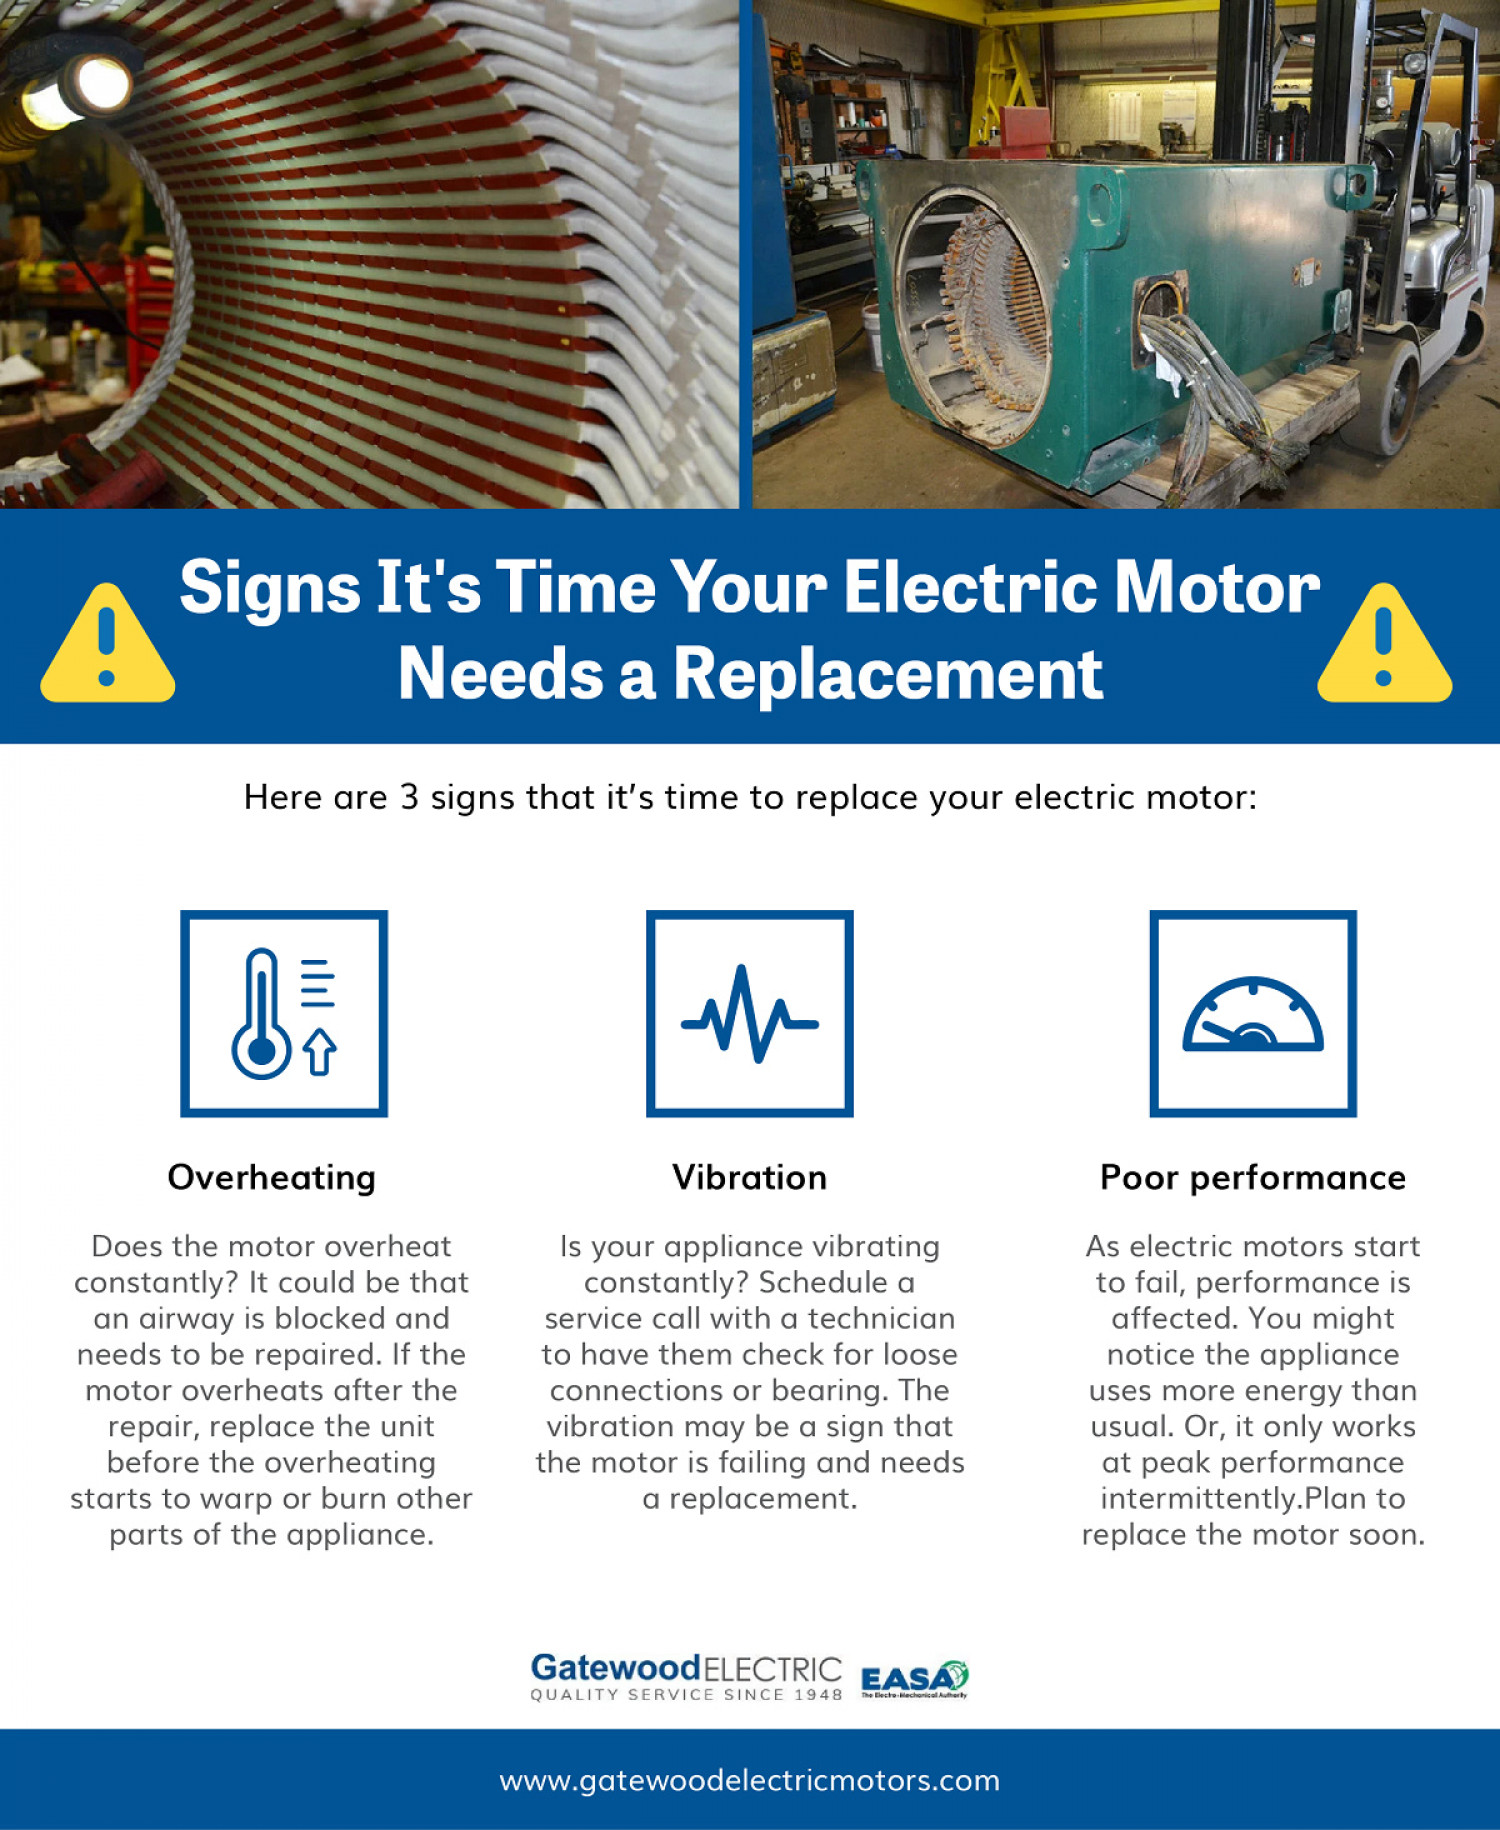 Signs It's Time Your Electric Motor Needs a Replacement Infographic